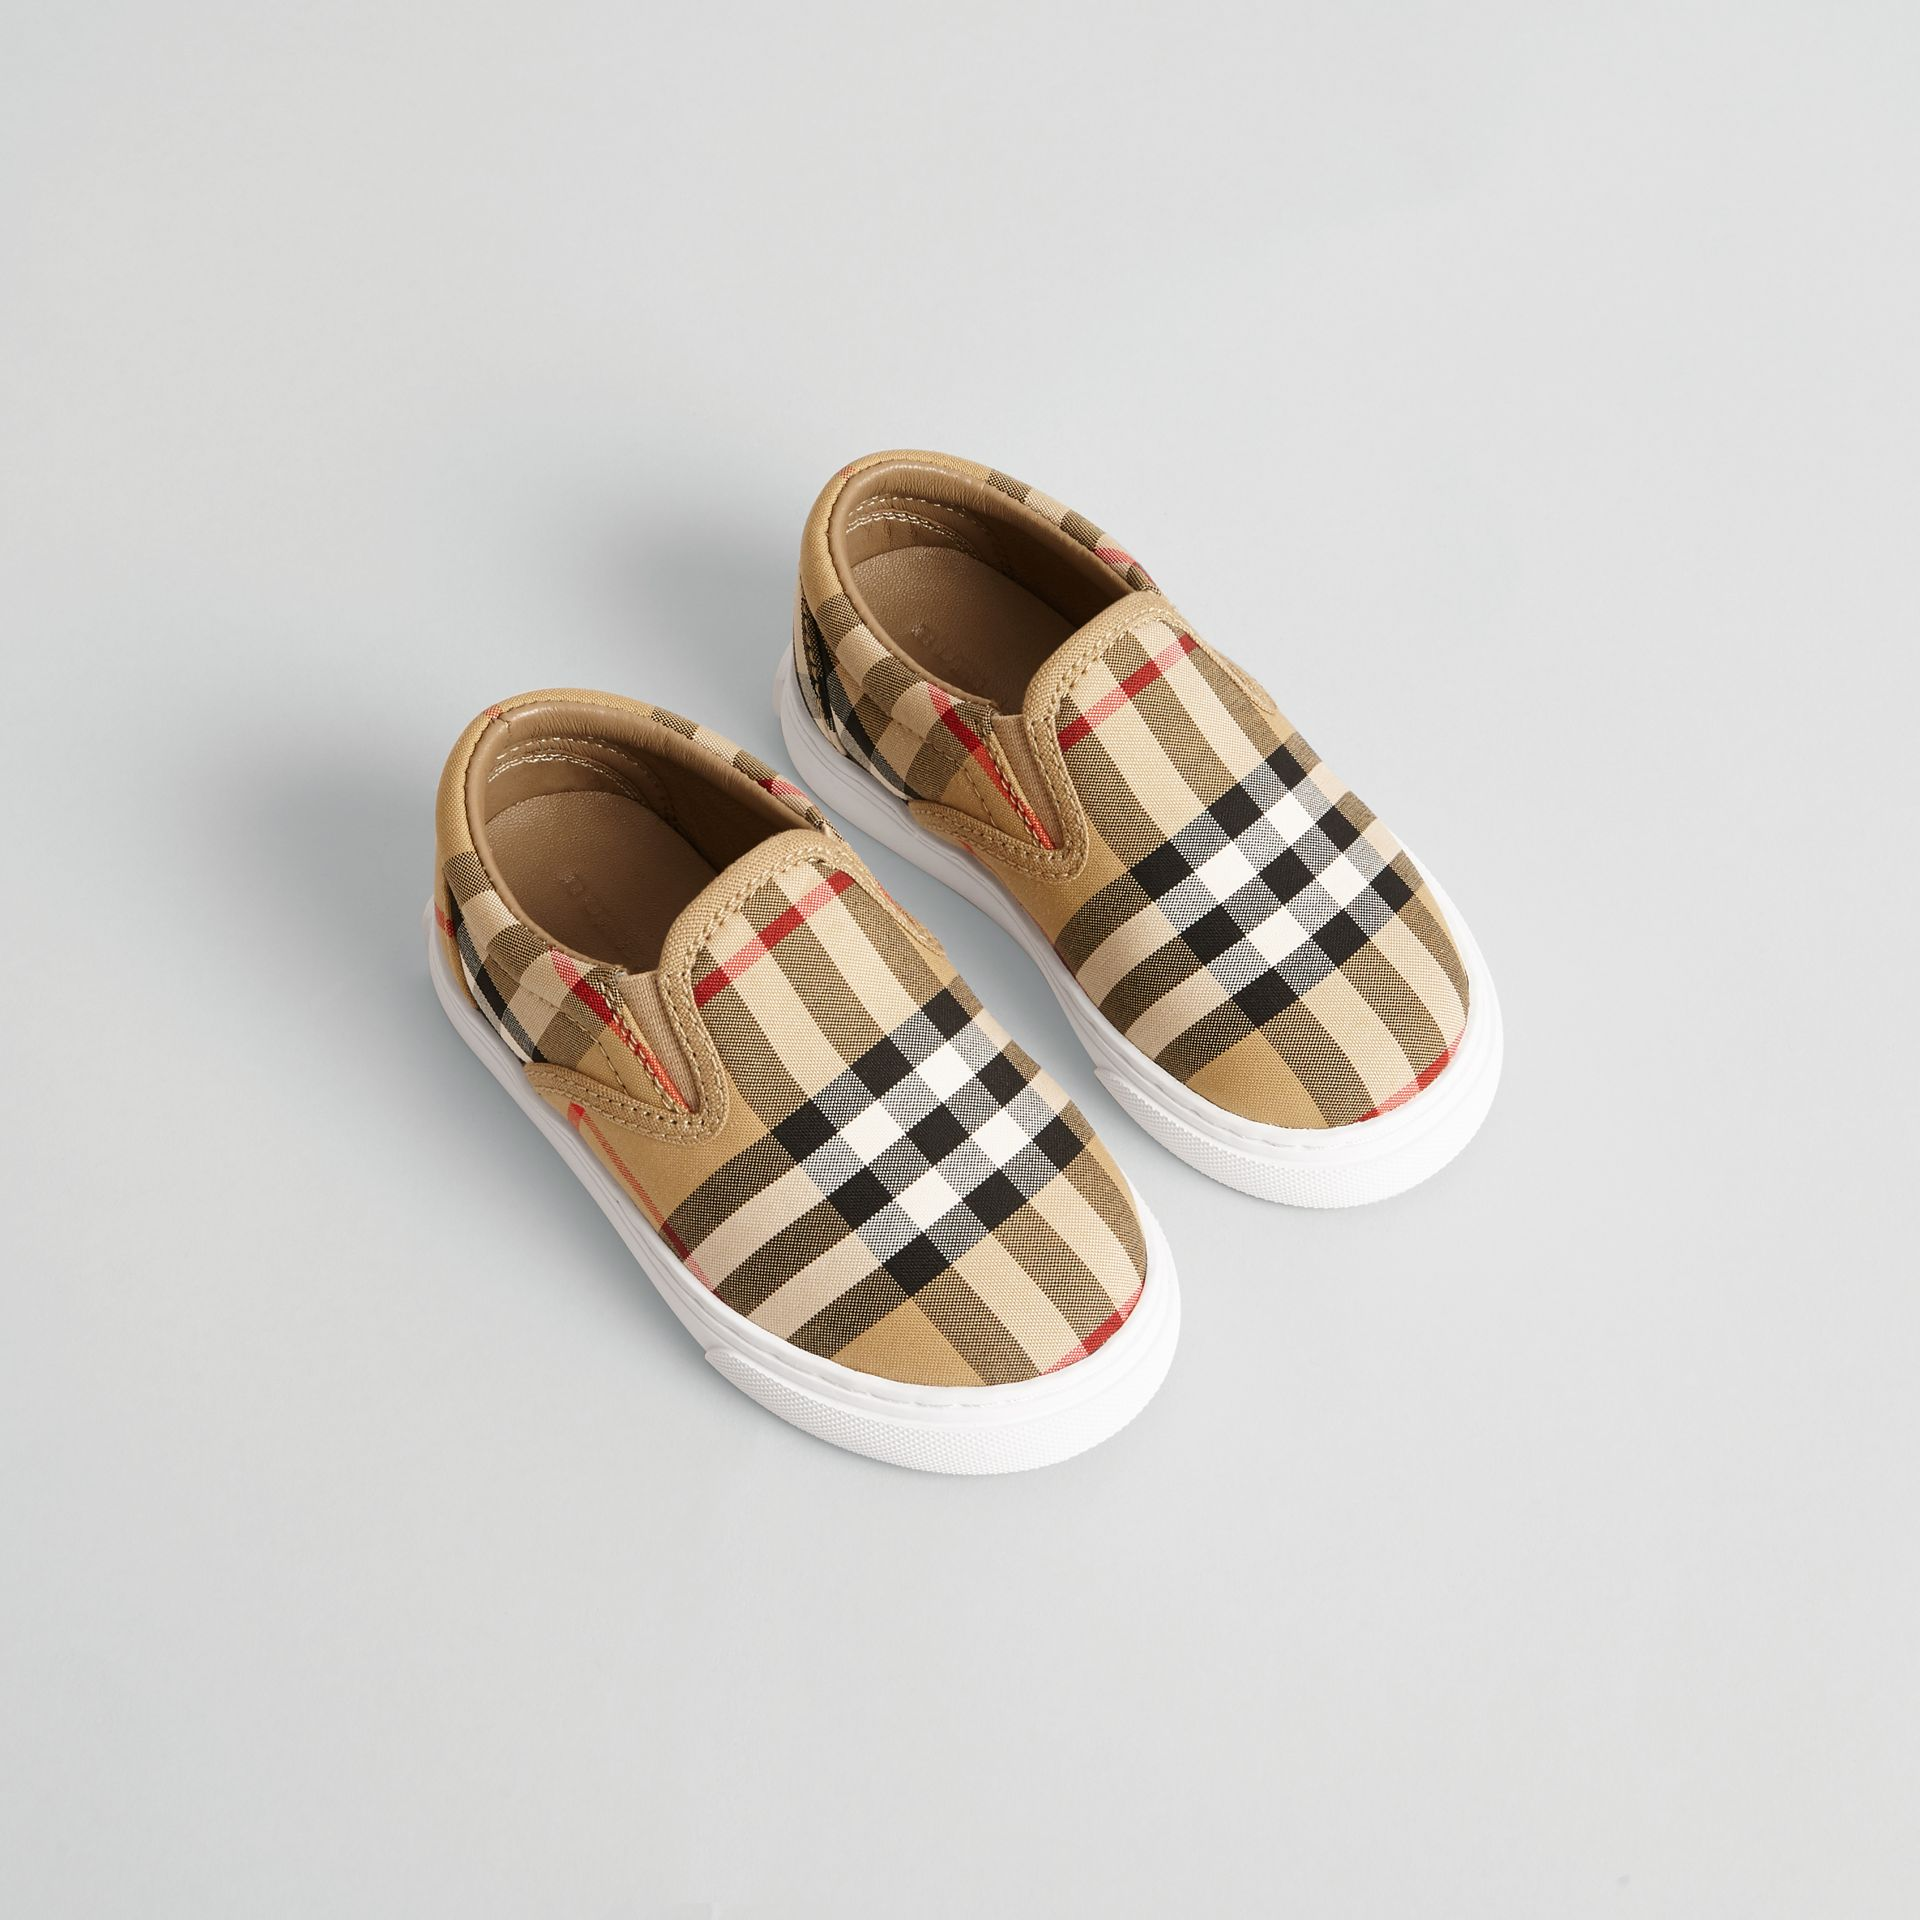 Sneakers sans lacets en cuir à motif Vintage check (Jaune Antique/blanc Optique) - Enfant | Burberry Canada - photo de la galerie 0